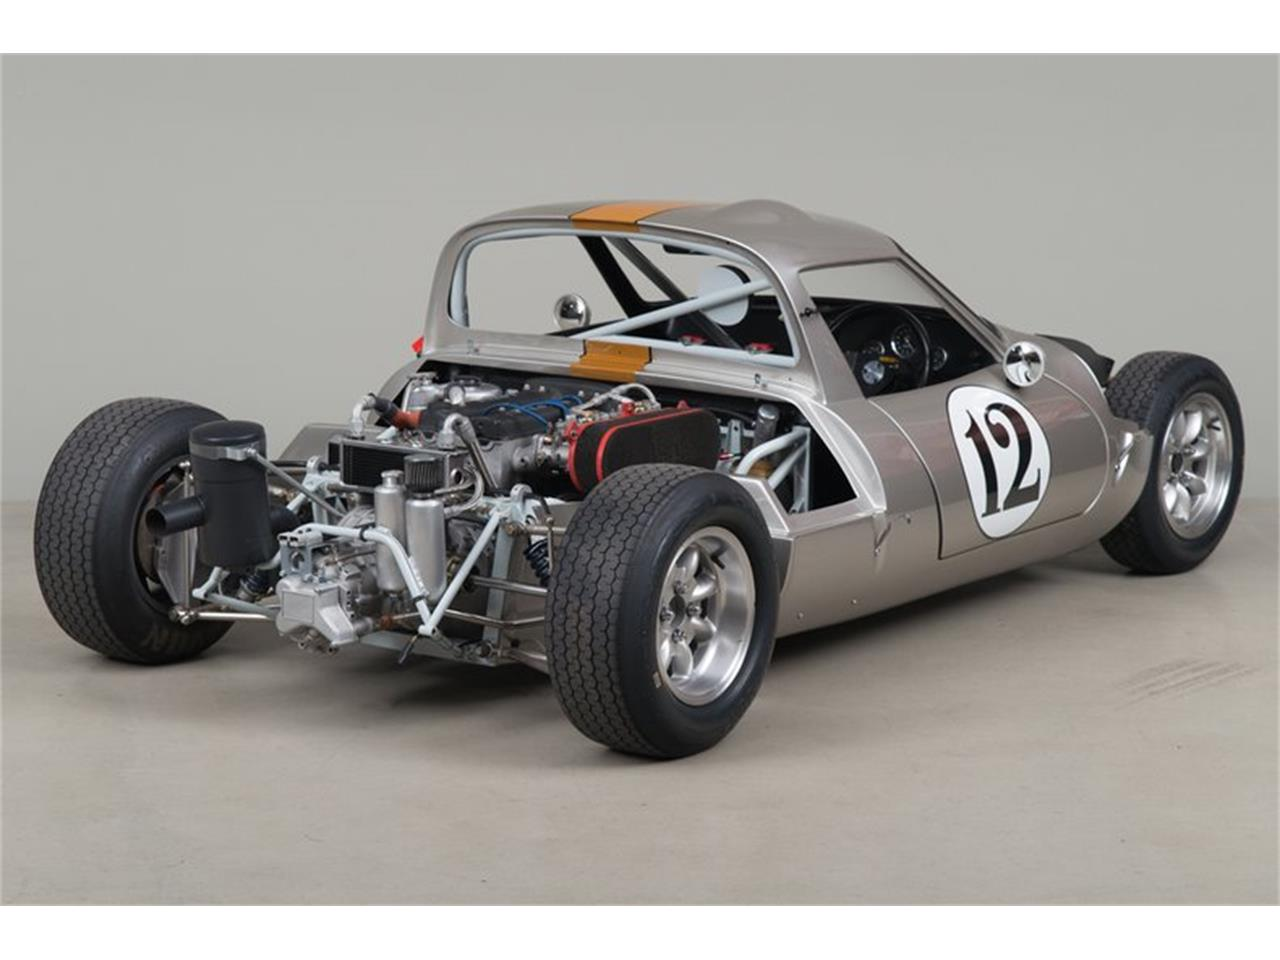 1967 Ginetta G12 for sale in Scotts Valley, CA – photo 8